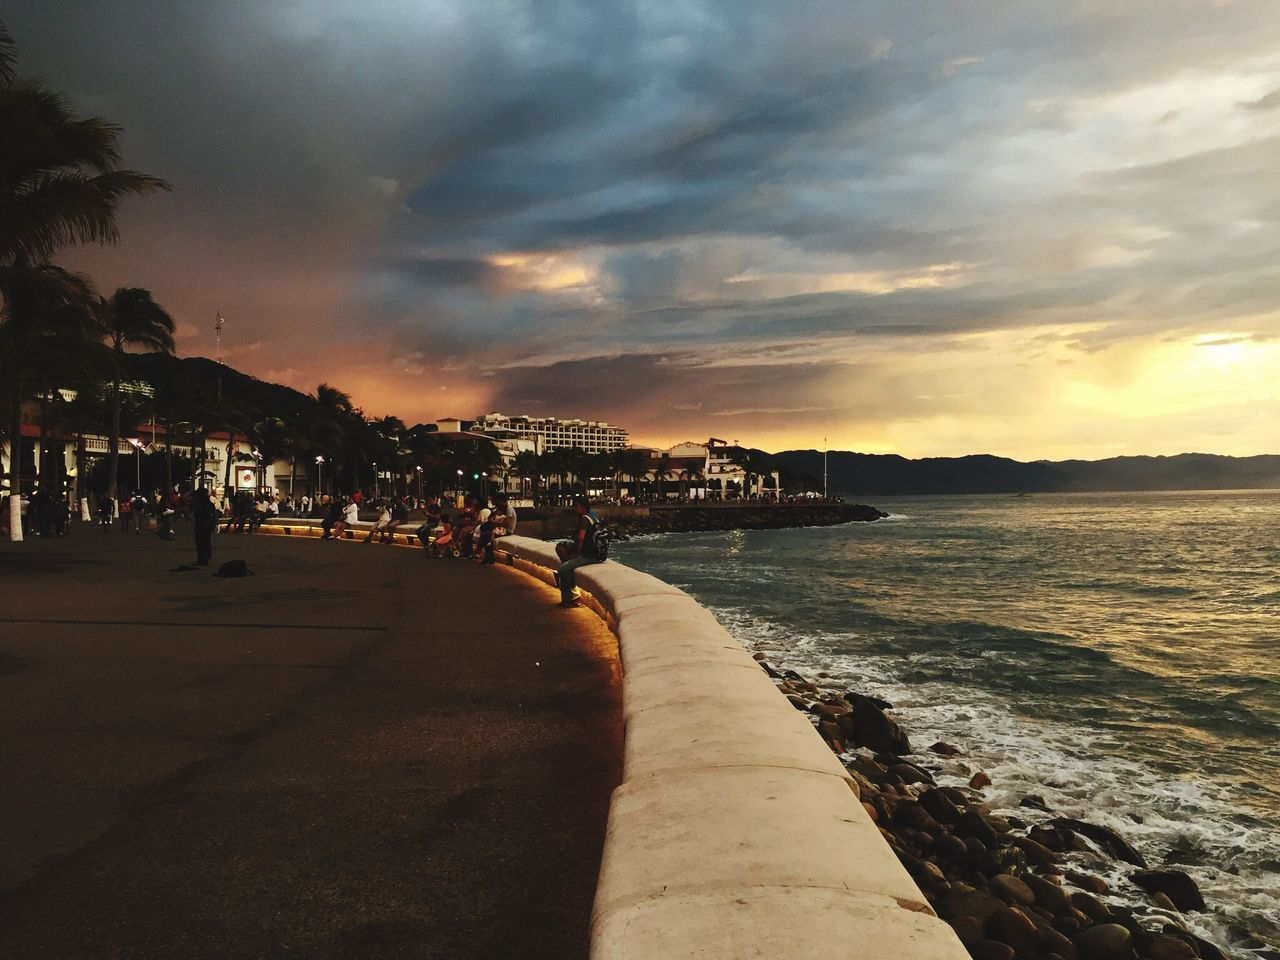 sky, water, cloud - sky, architecture, sea, beach, sunset, nature, building exterior, city, built structure, land, beauty in nature, scenics - nature, group of people, incidental people, outdoors, people, idyllic